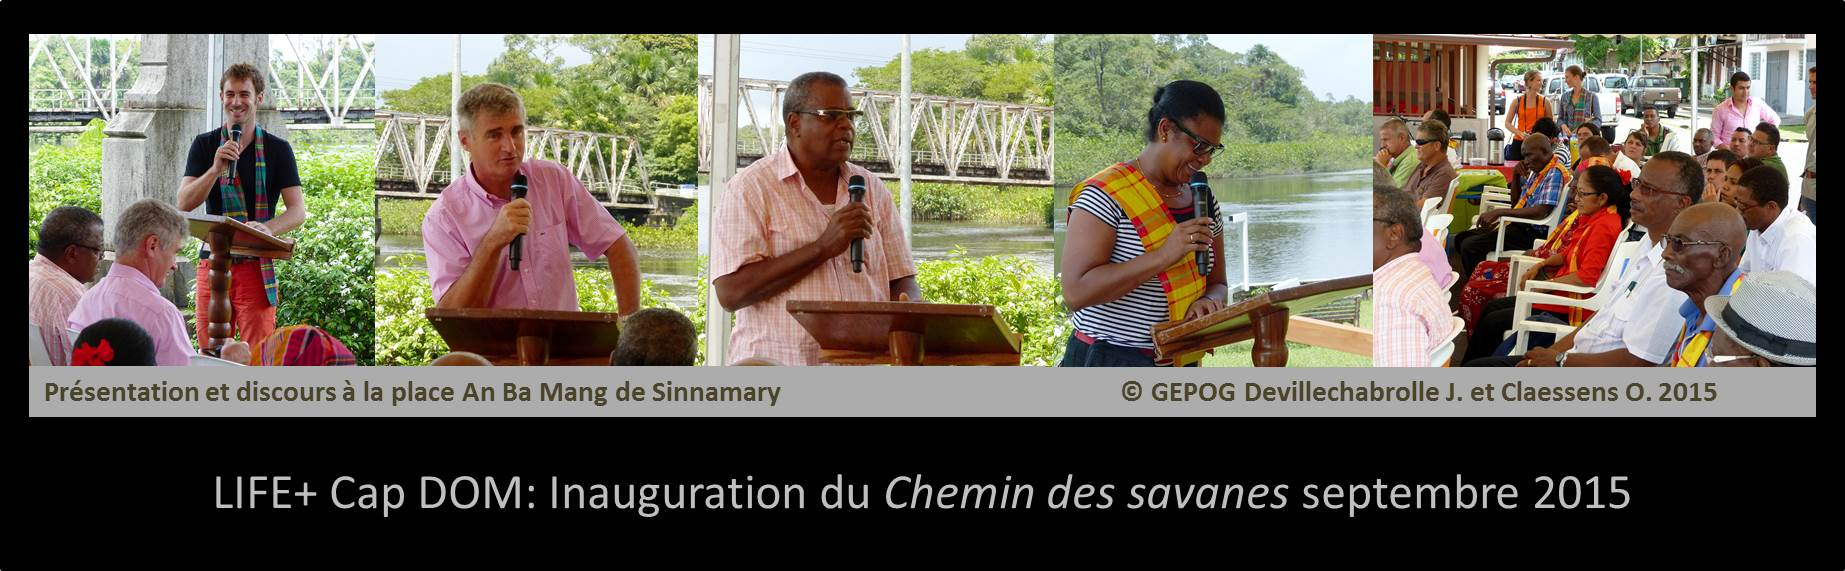 Inauguration - discours